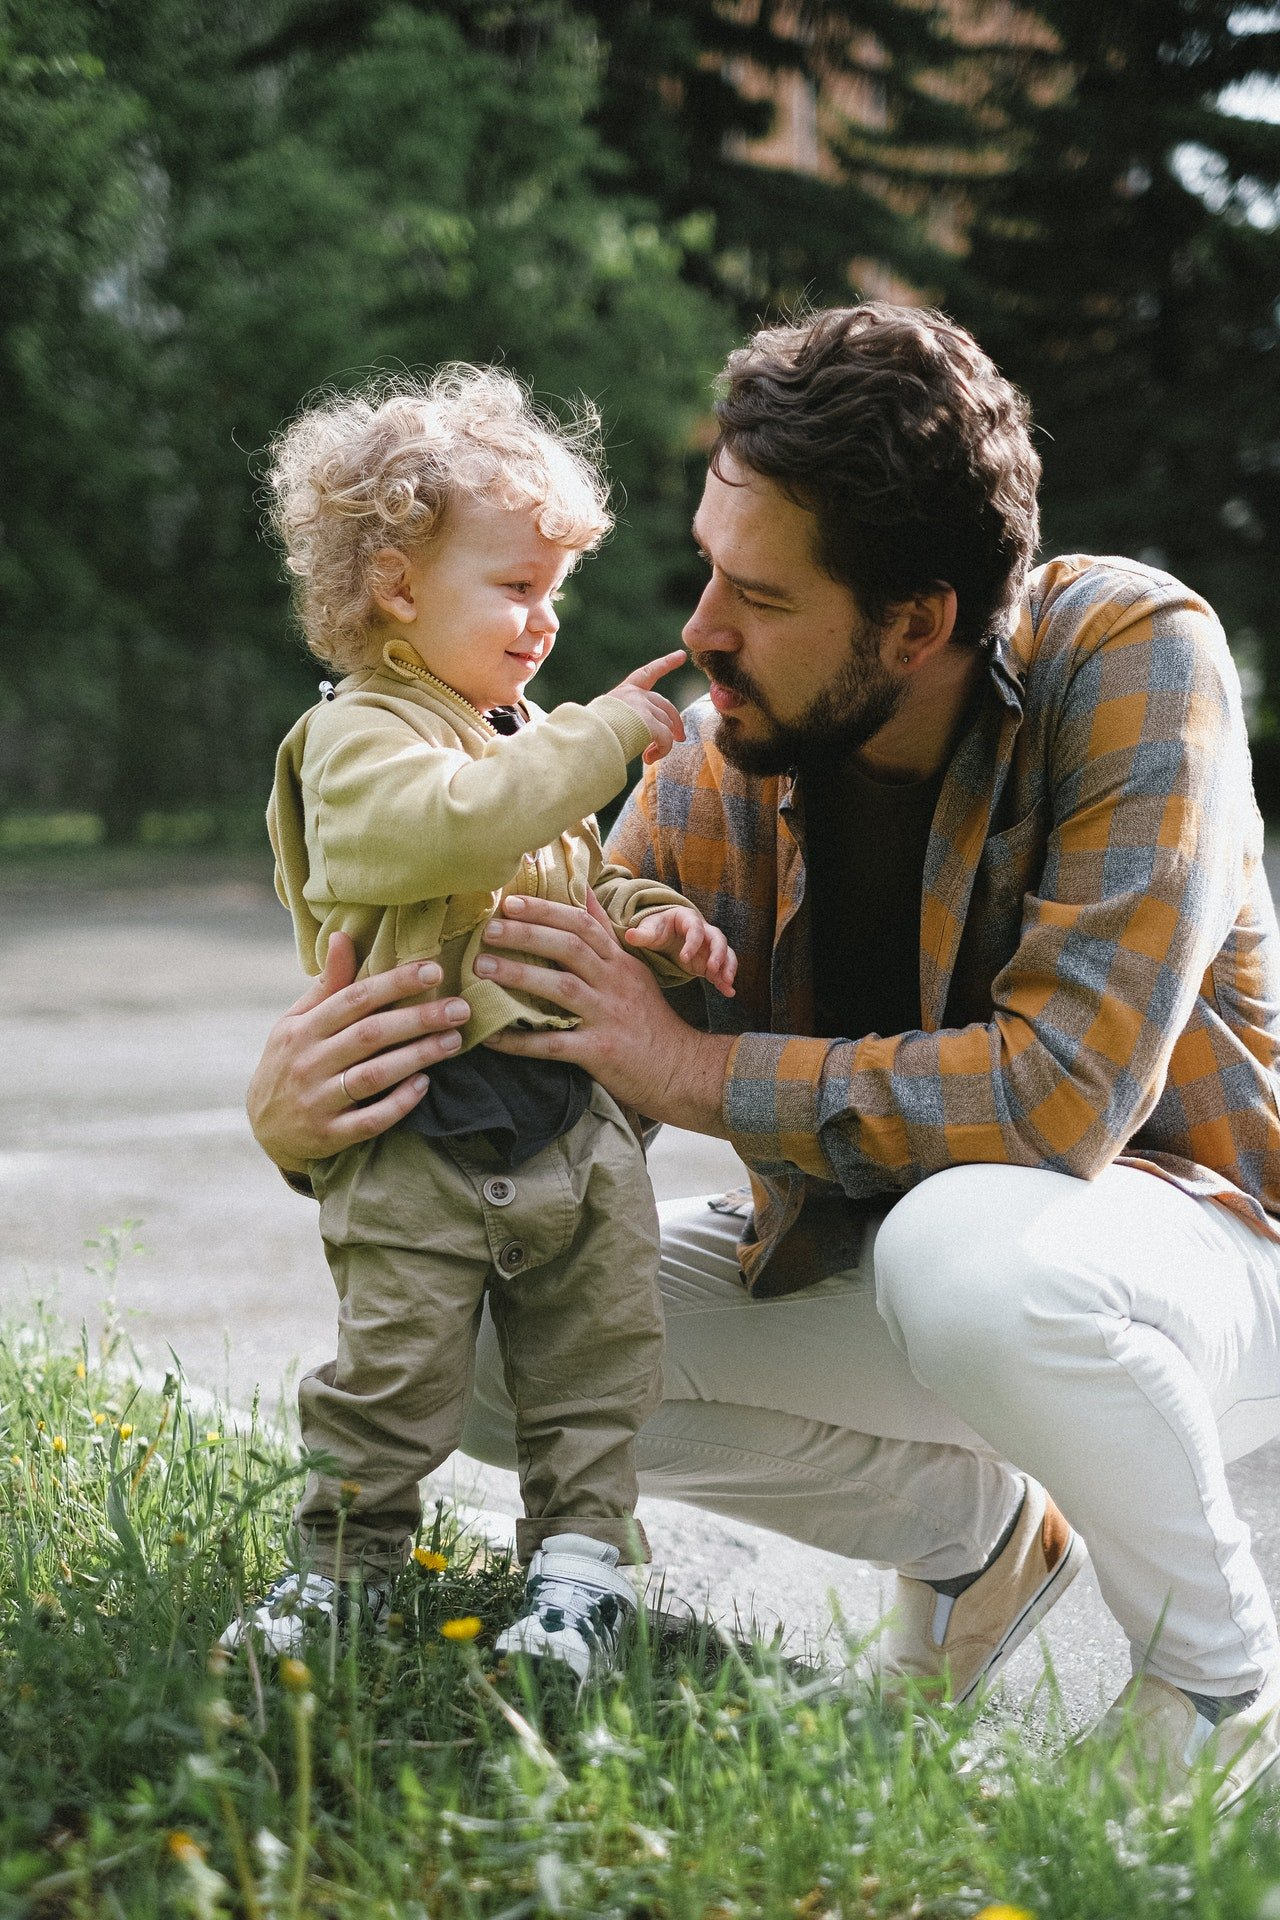 Photo of a father holding his child outside. | Source: Pexels/AnnaShvets